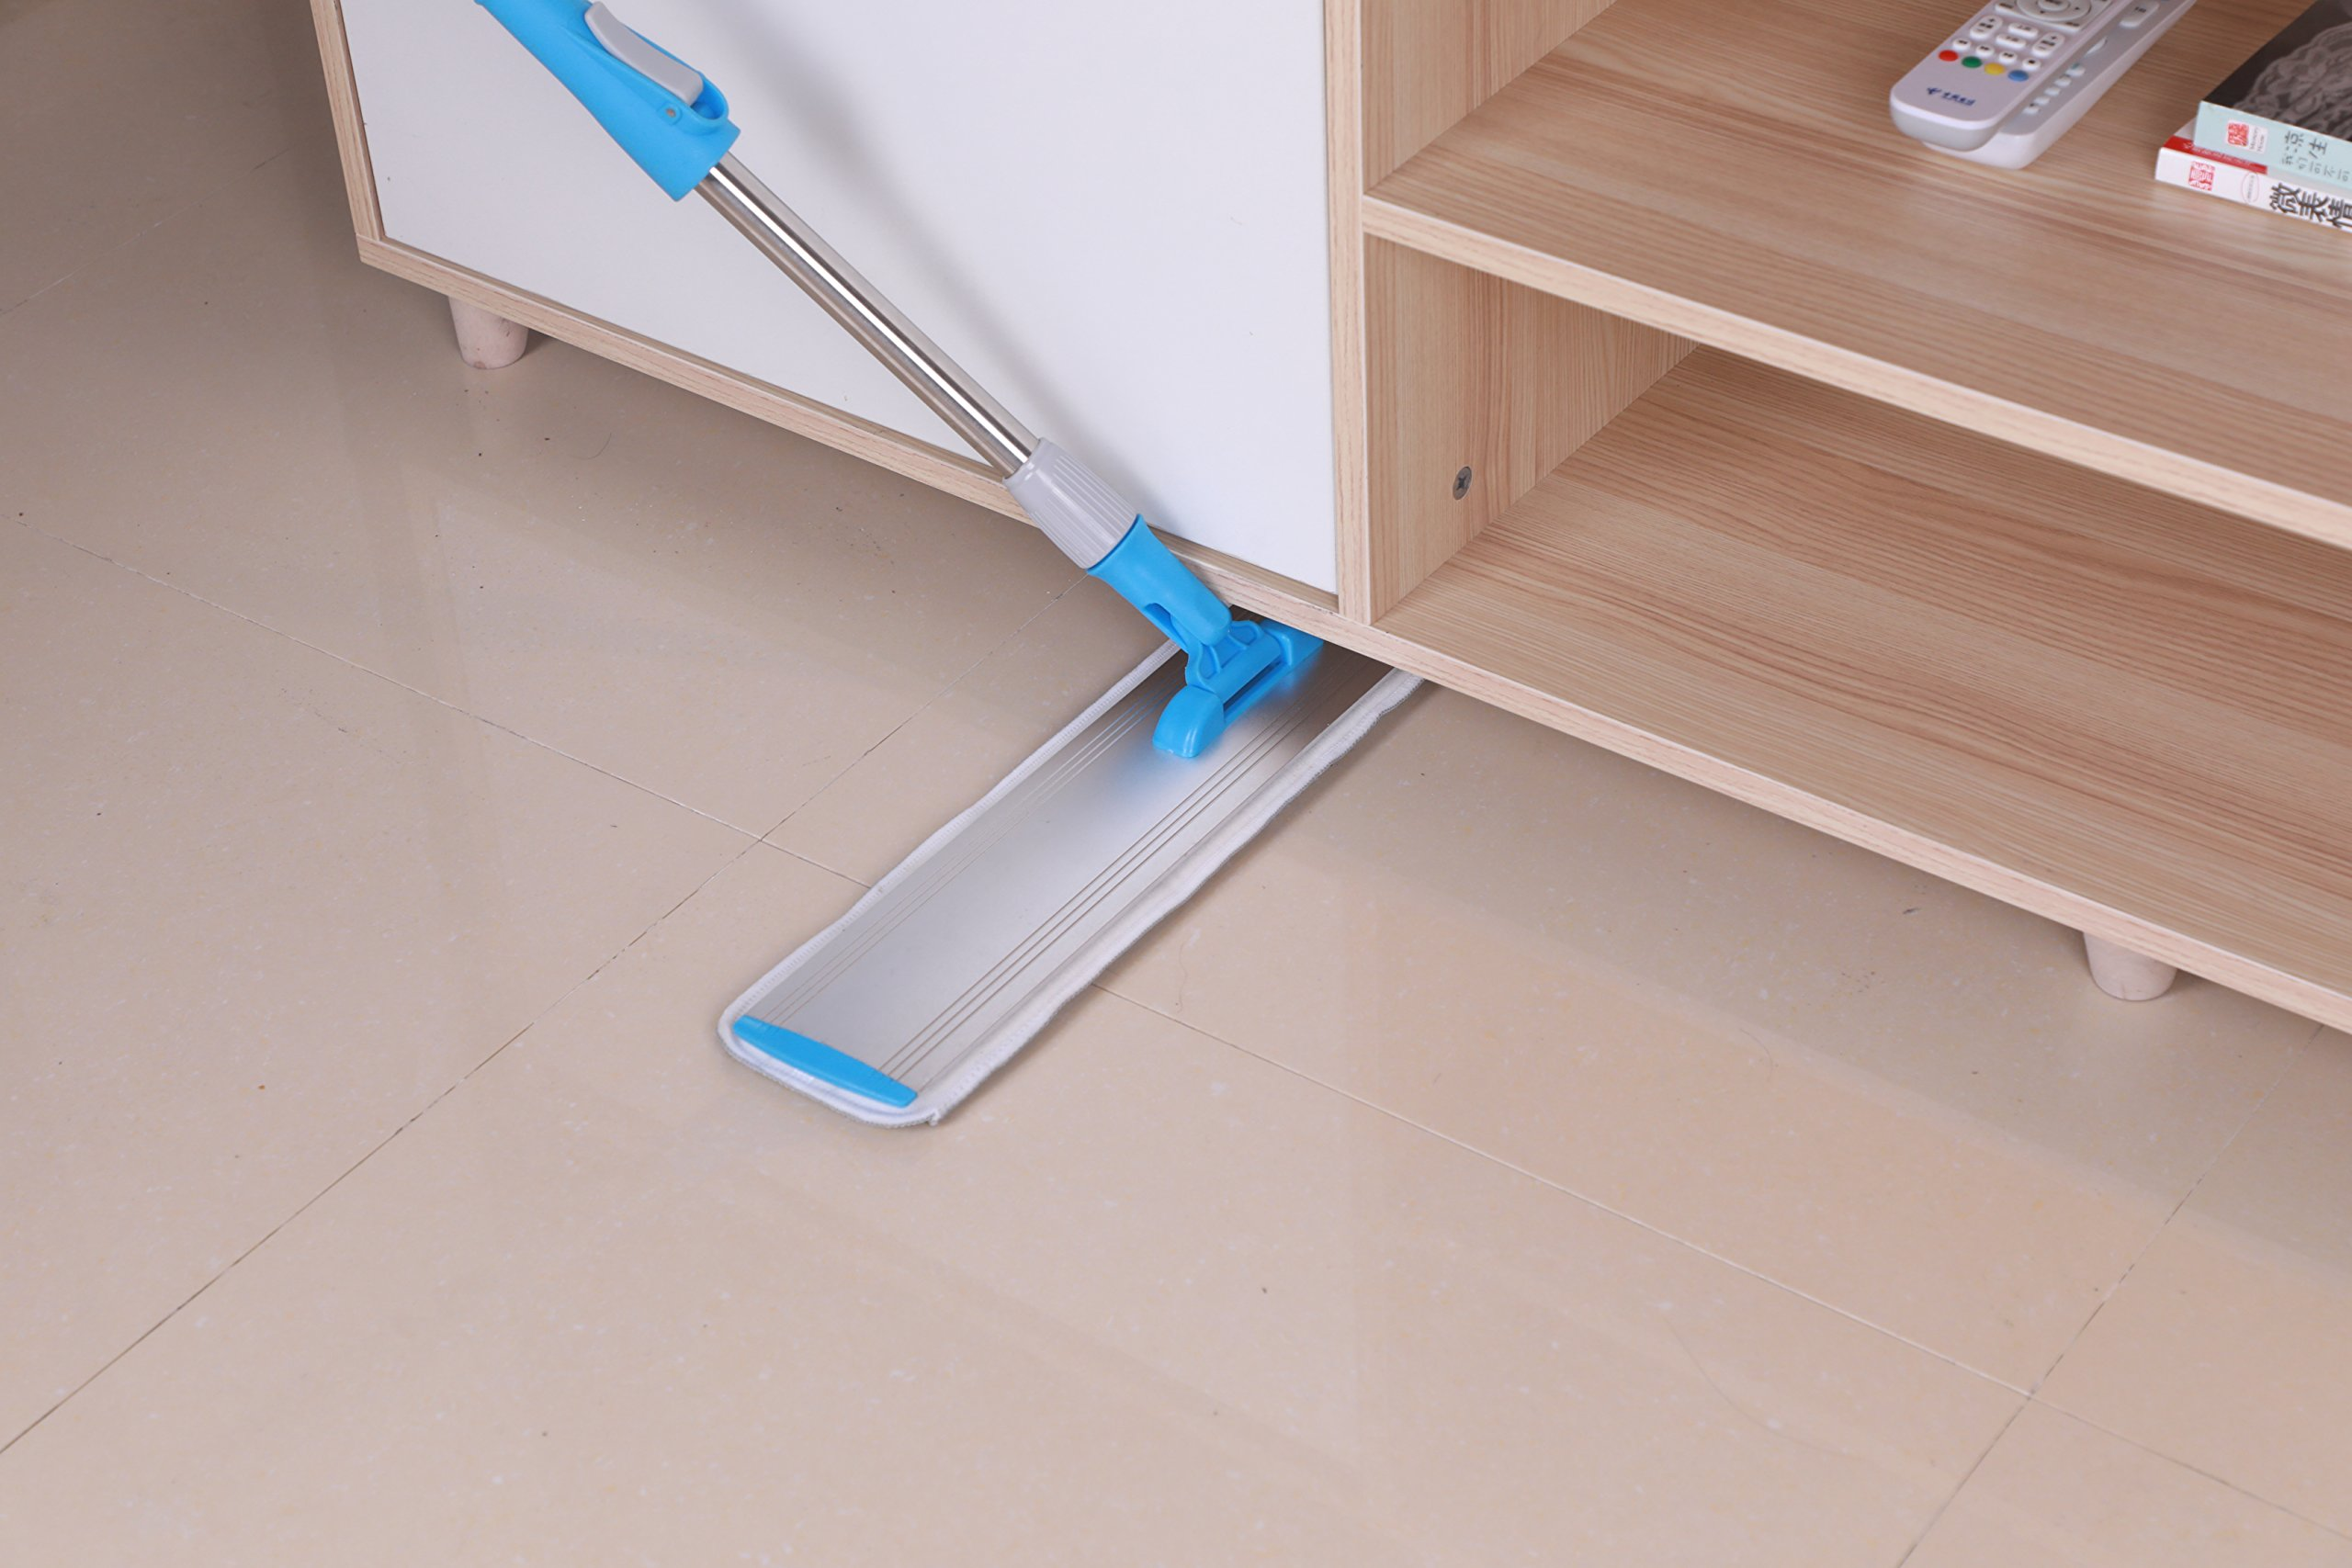 Wet Mop 24'' Microfiber Mop Heavy Duty Floor Mop Aluminum Mop Adjustable Stainless Steel Handle 4 Wet and Dry Clothes Floor Cleaning System by YOUSHANGJIA (Image #8)